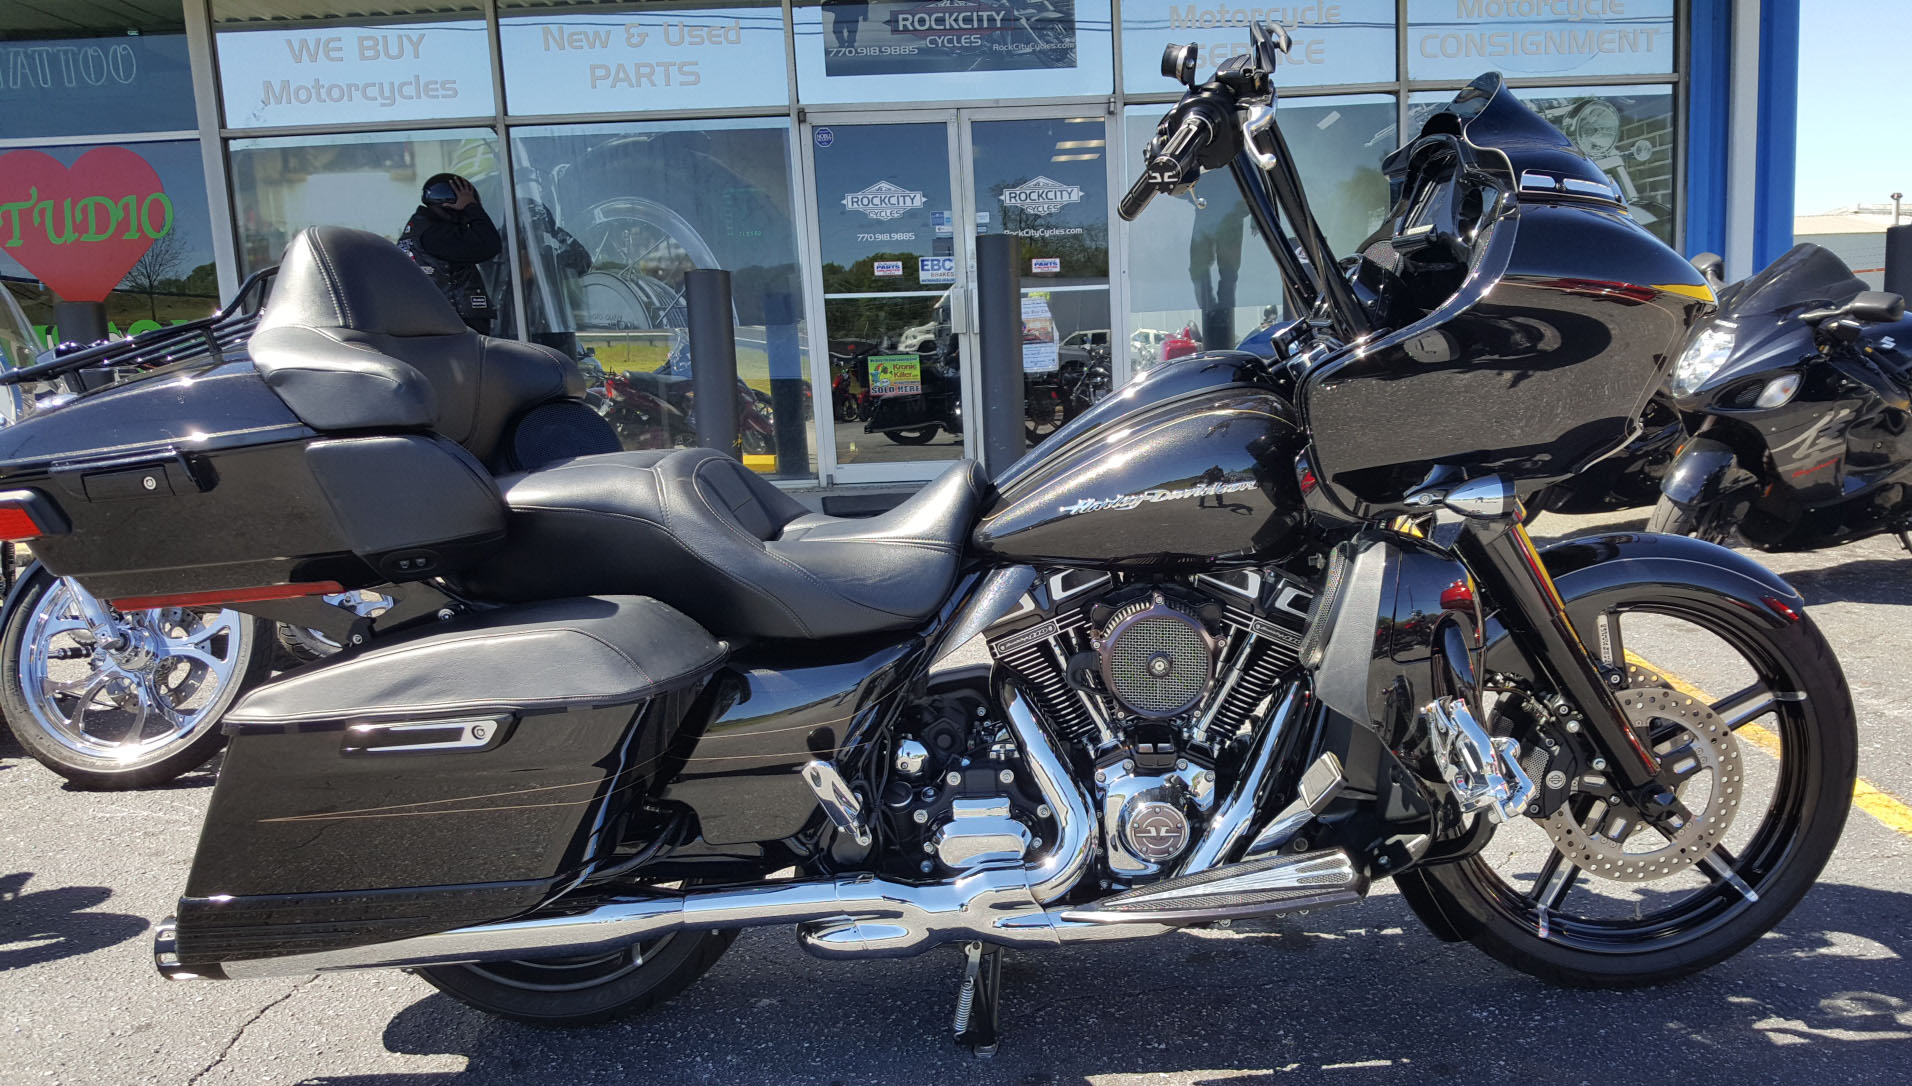 2016 Harley Davidson Road Glide Special Rock City Cycles